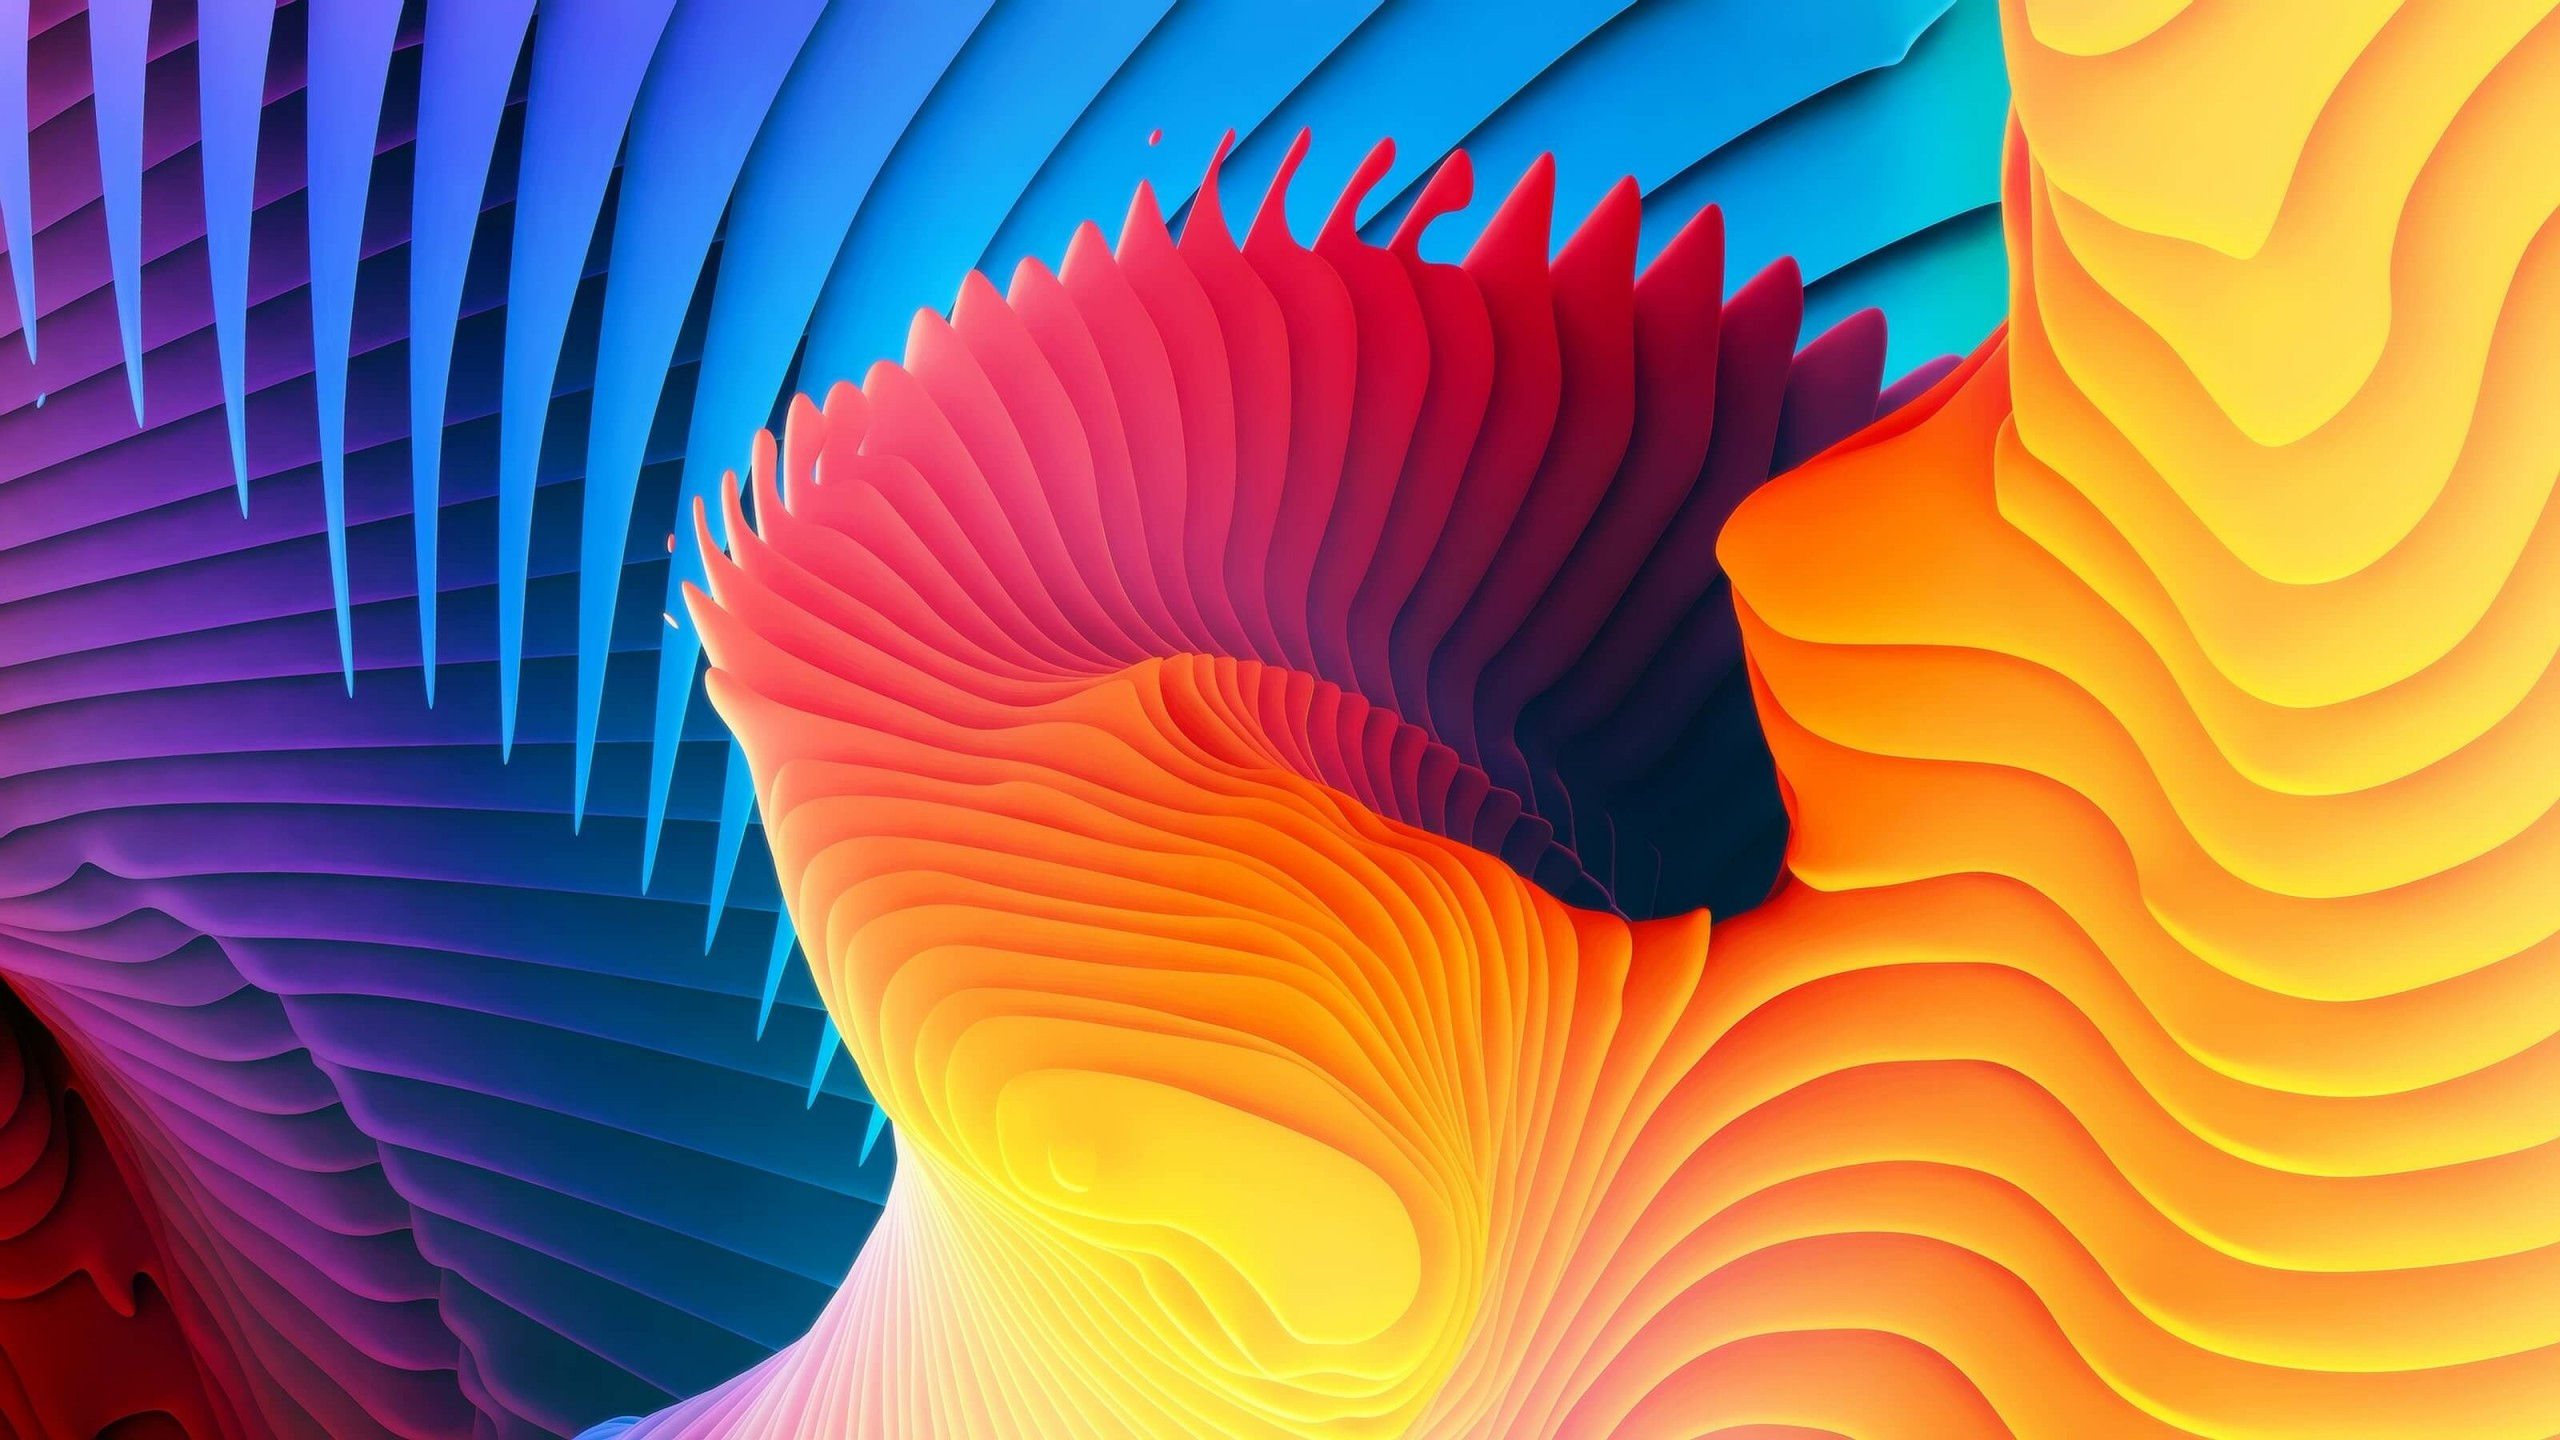 3D Colorful Spiral Wallpaper for Social Media YouTube Channel Art